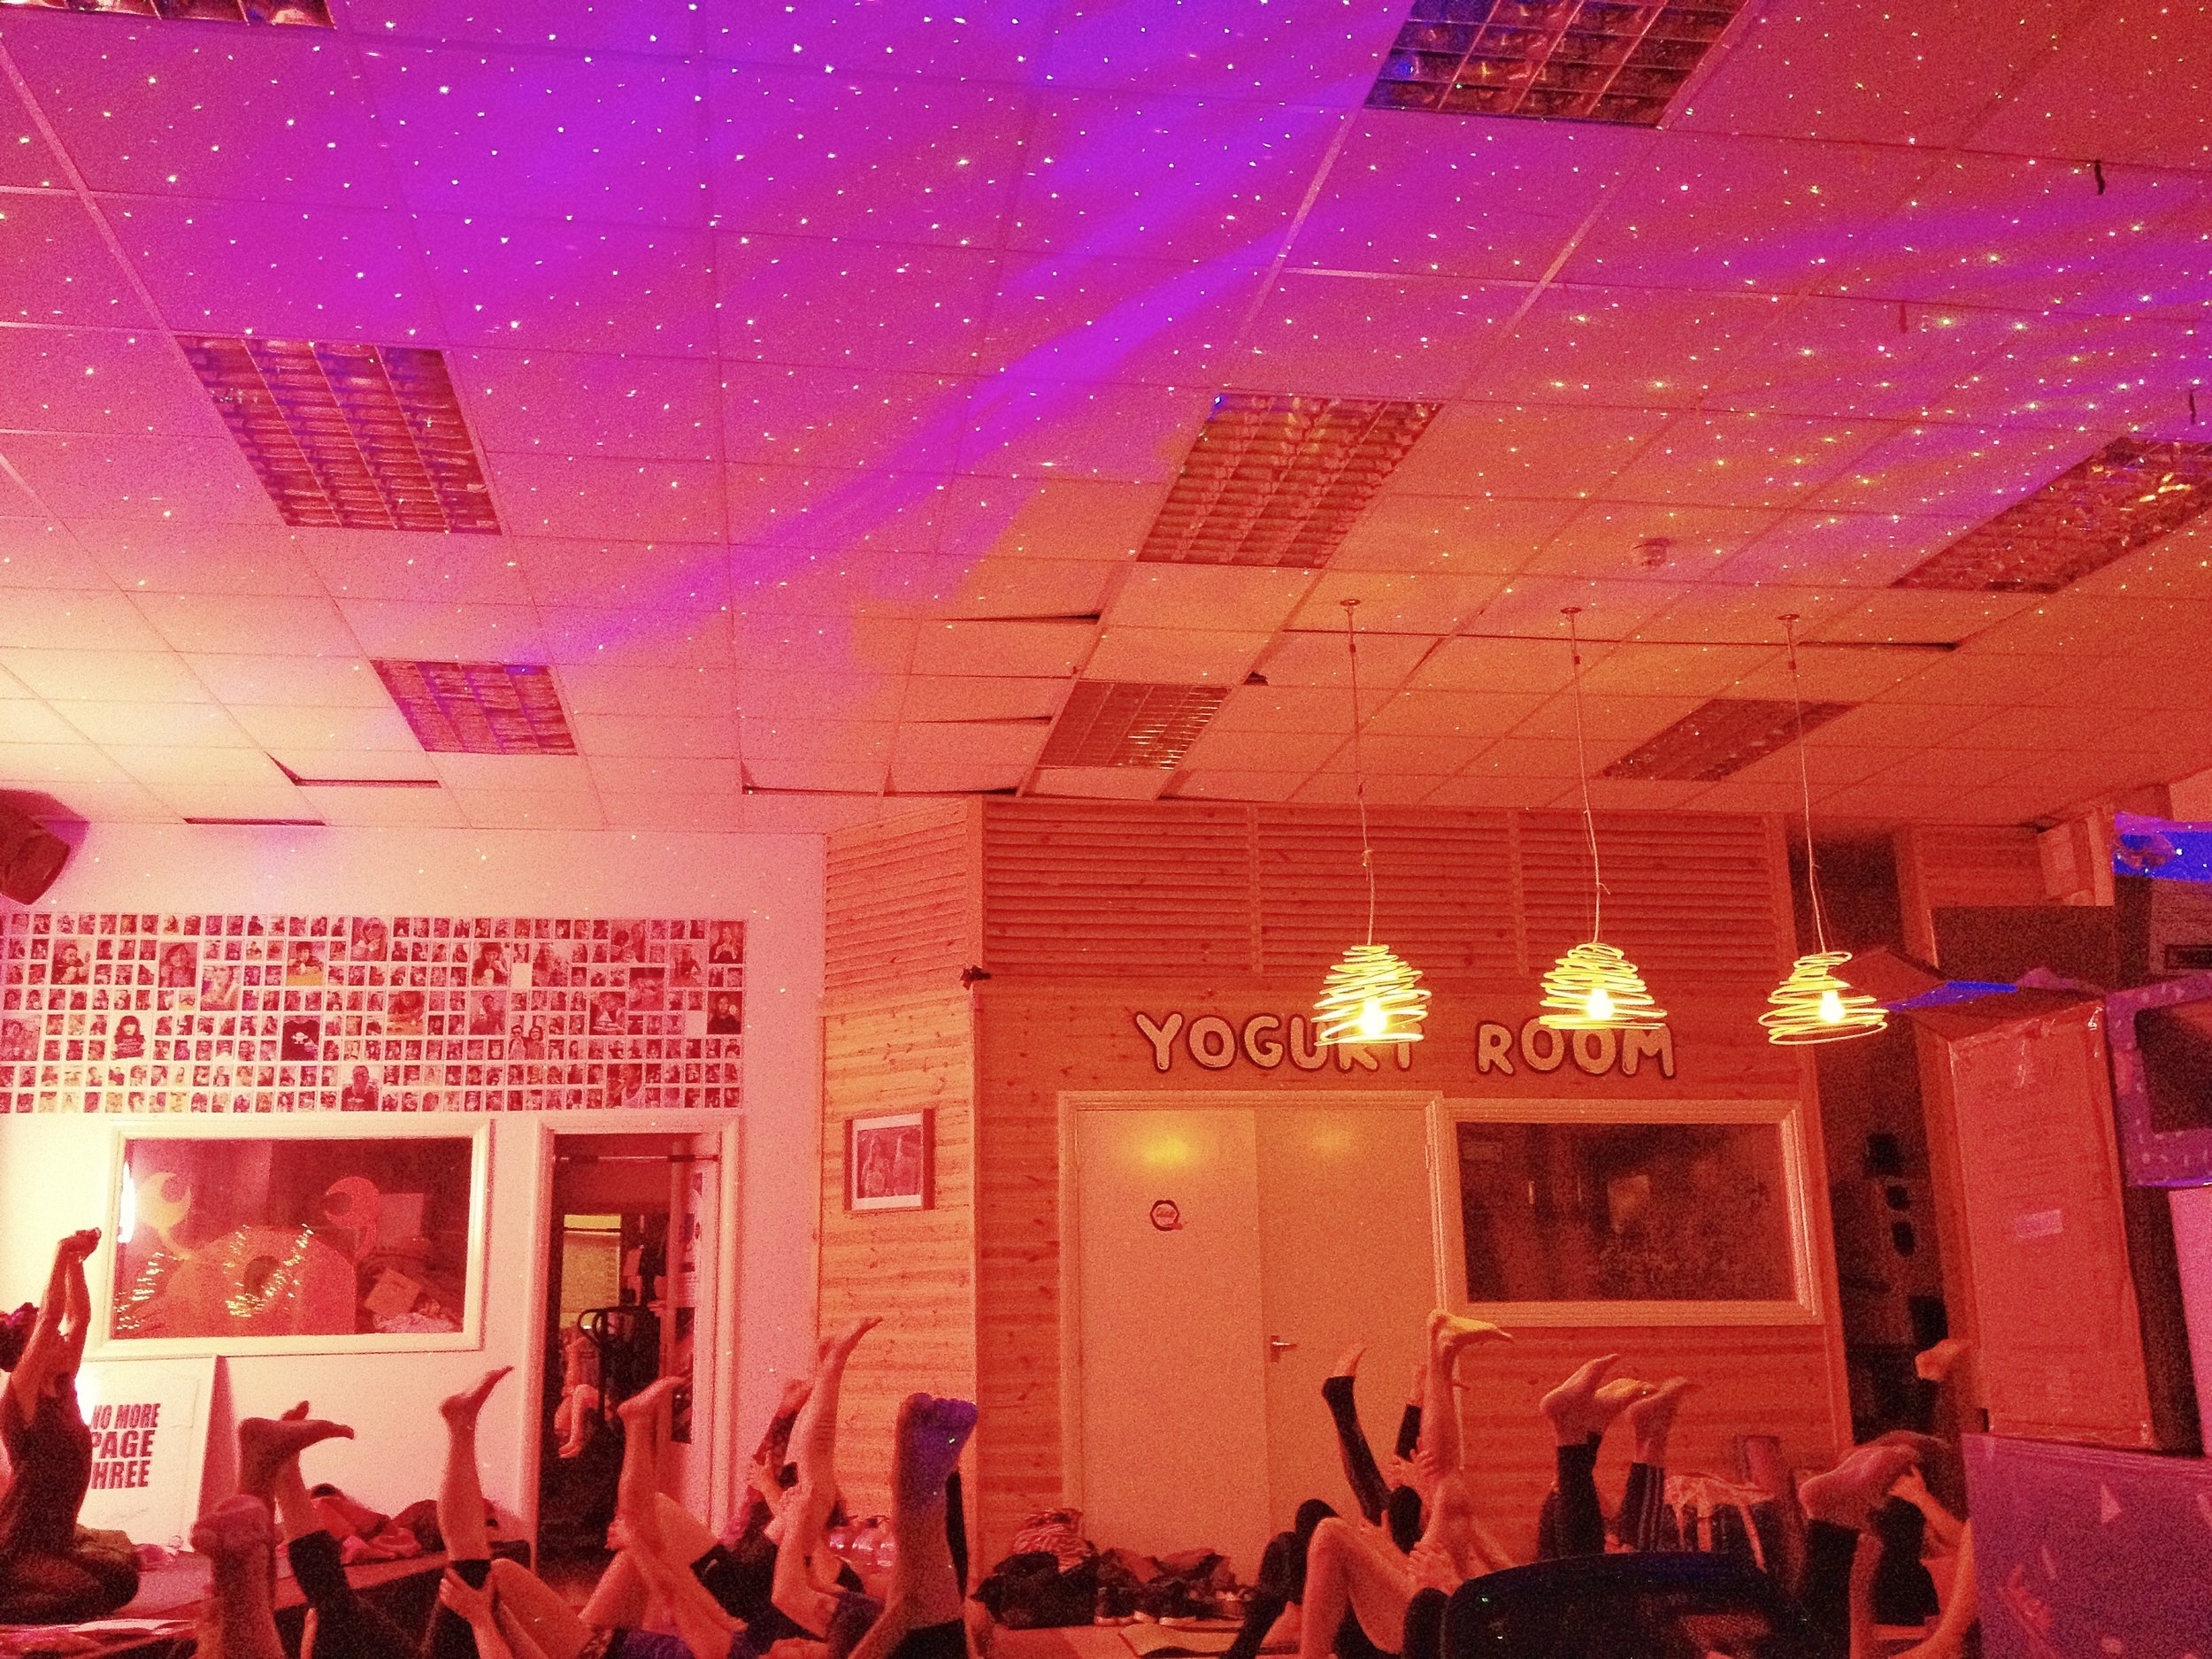 Lick Yoga - Pay what you can community yoga class in Brighton (UK) + free fro-yo!